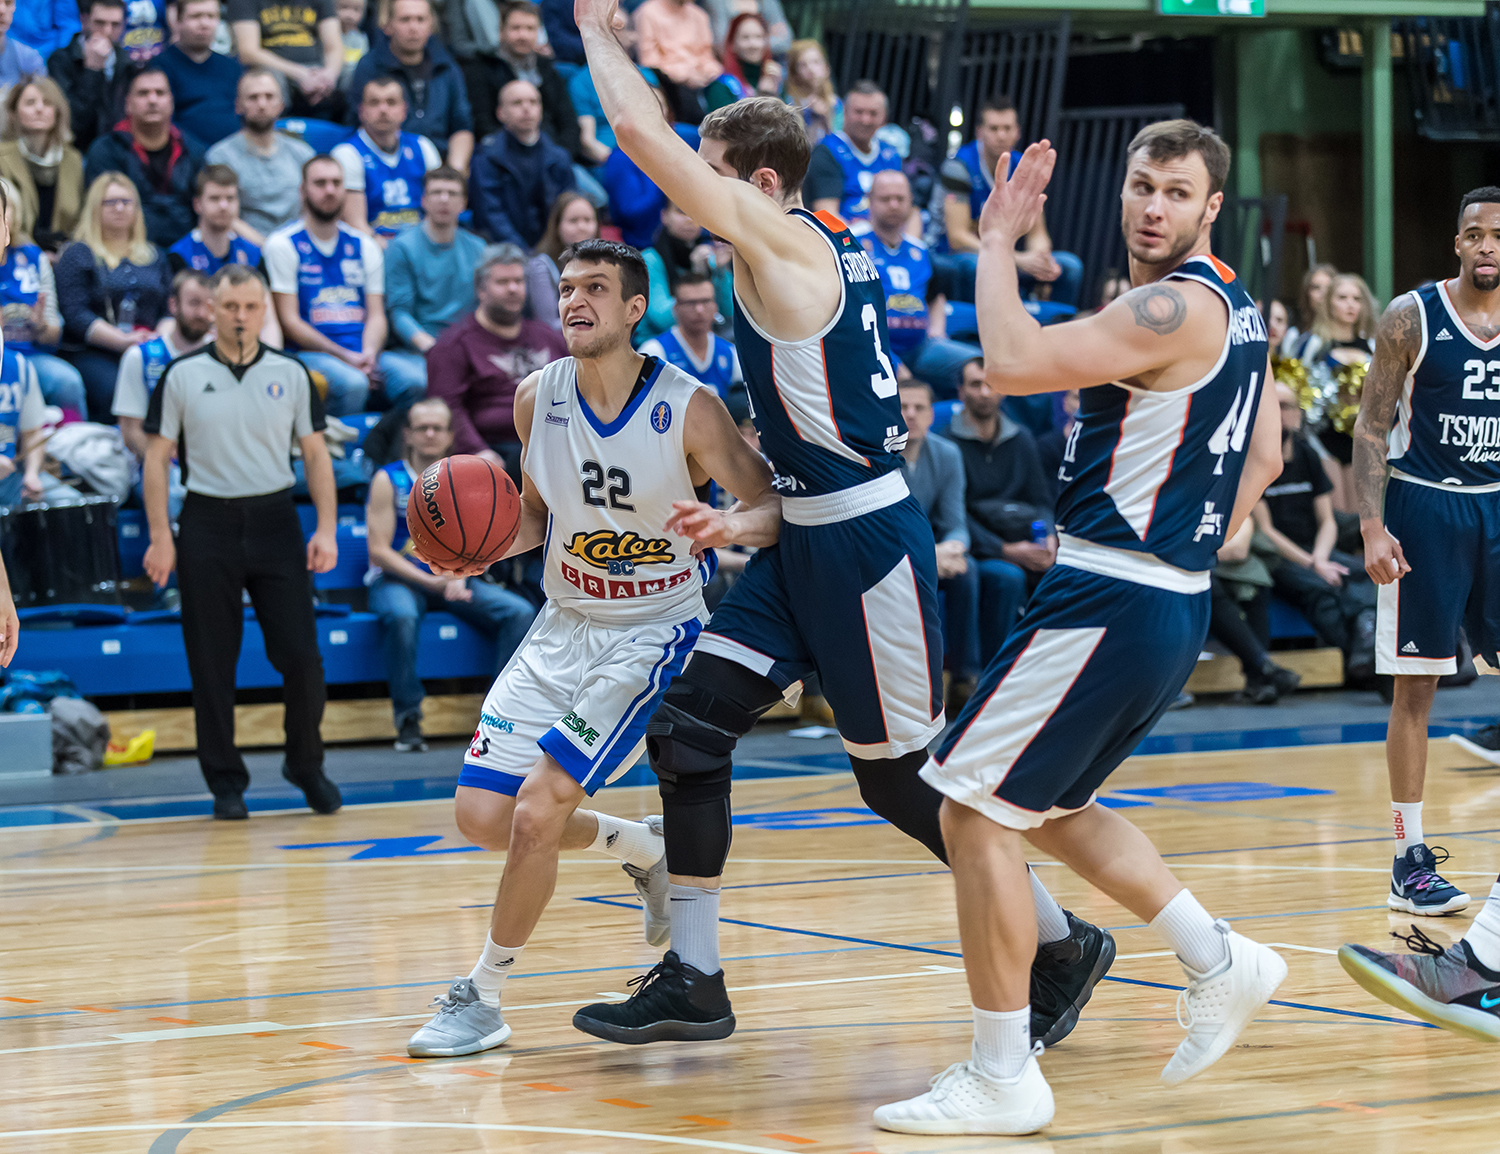 Kalev Buries Minsk, Now Tied For 8th Place